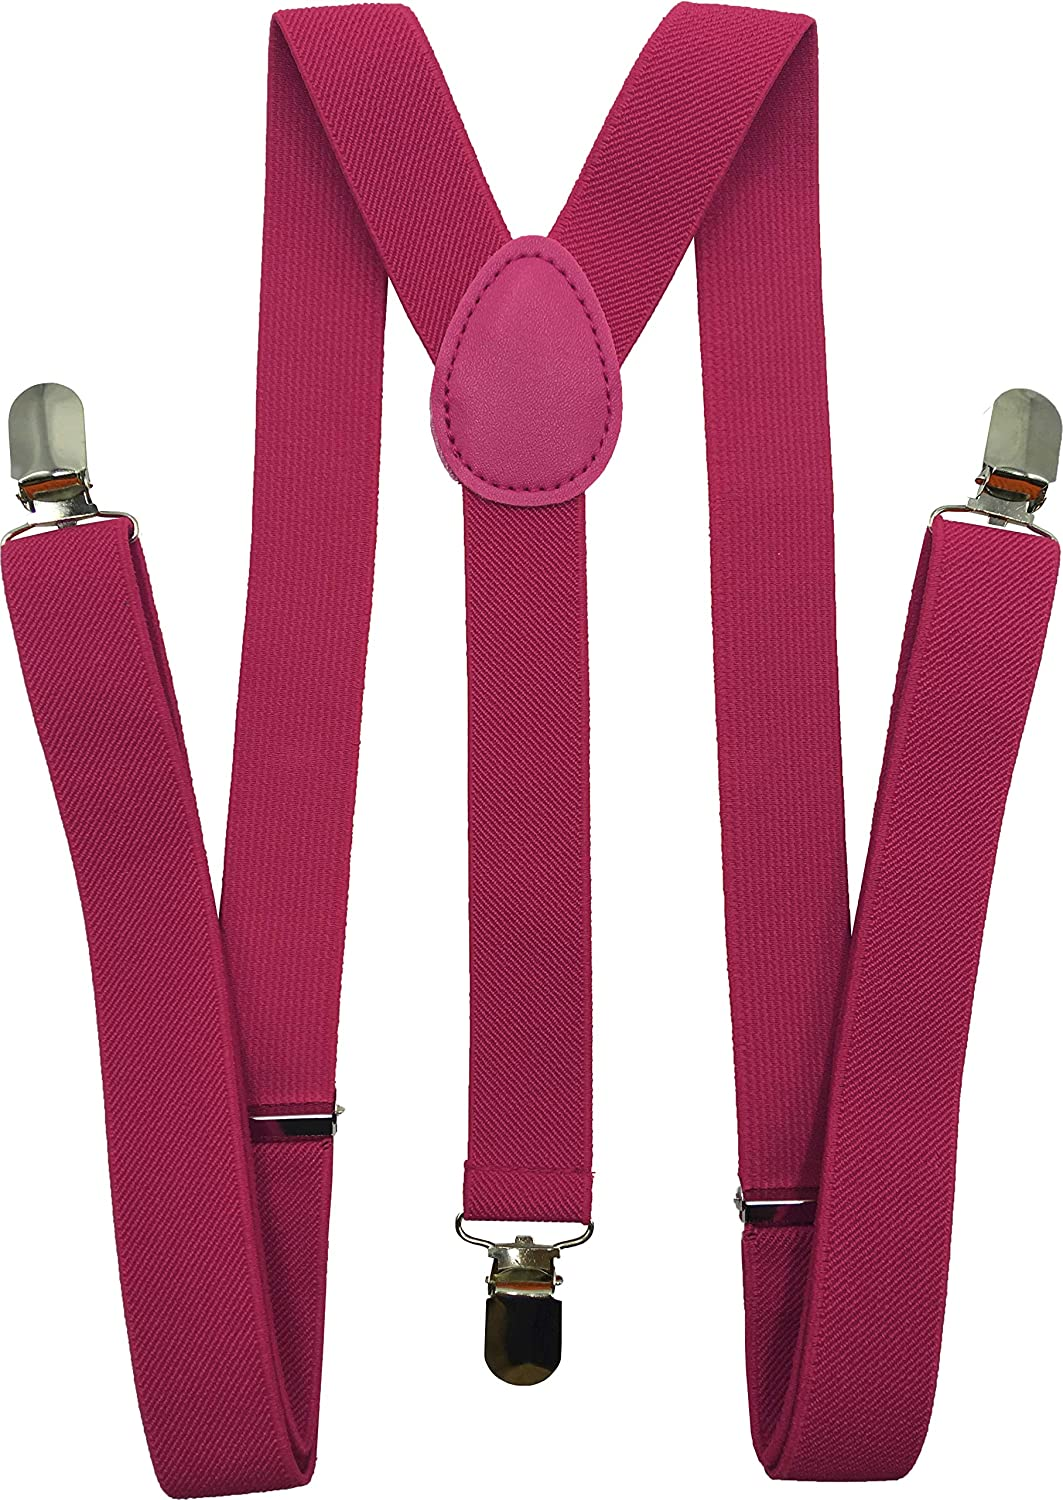 Consumable Depot Solid Color Suspenders Y-Back Adjustable and Elastic